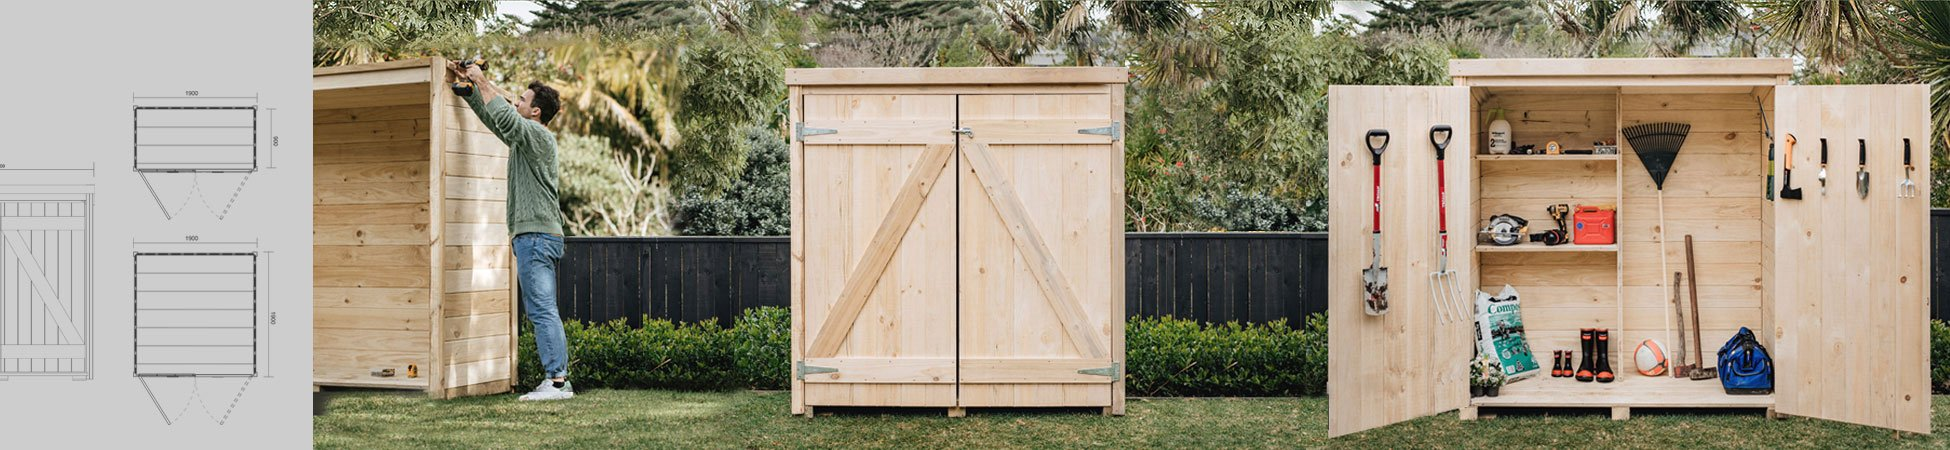 Laminata 1800mm x 885mm Timber Storage Shed